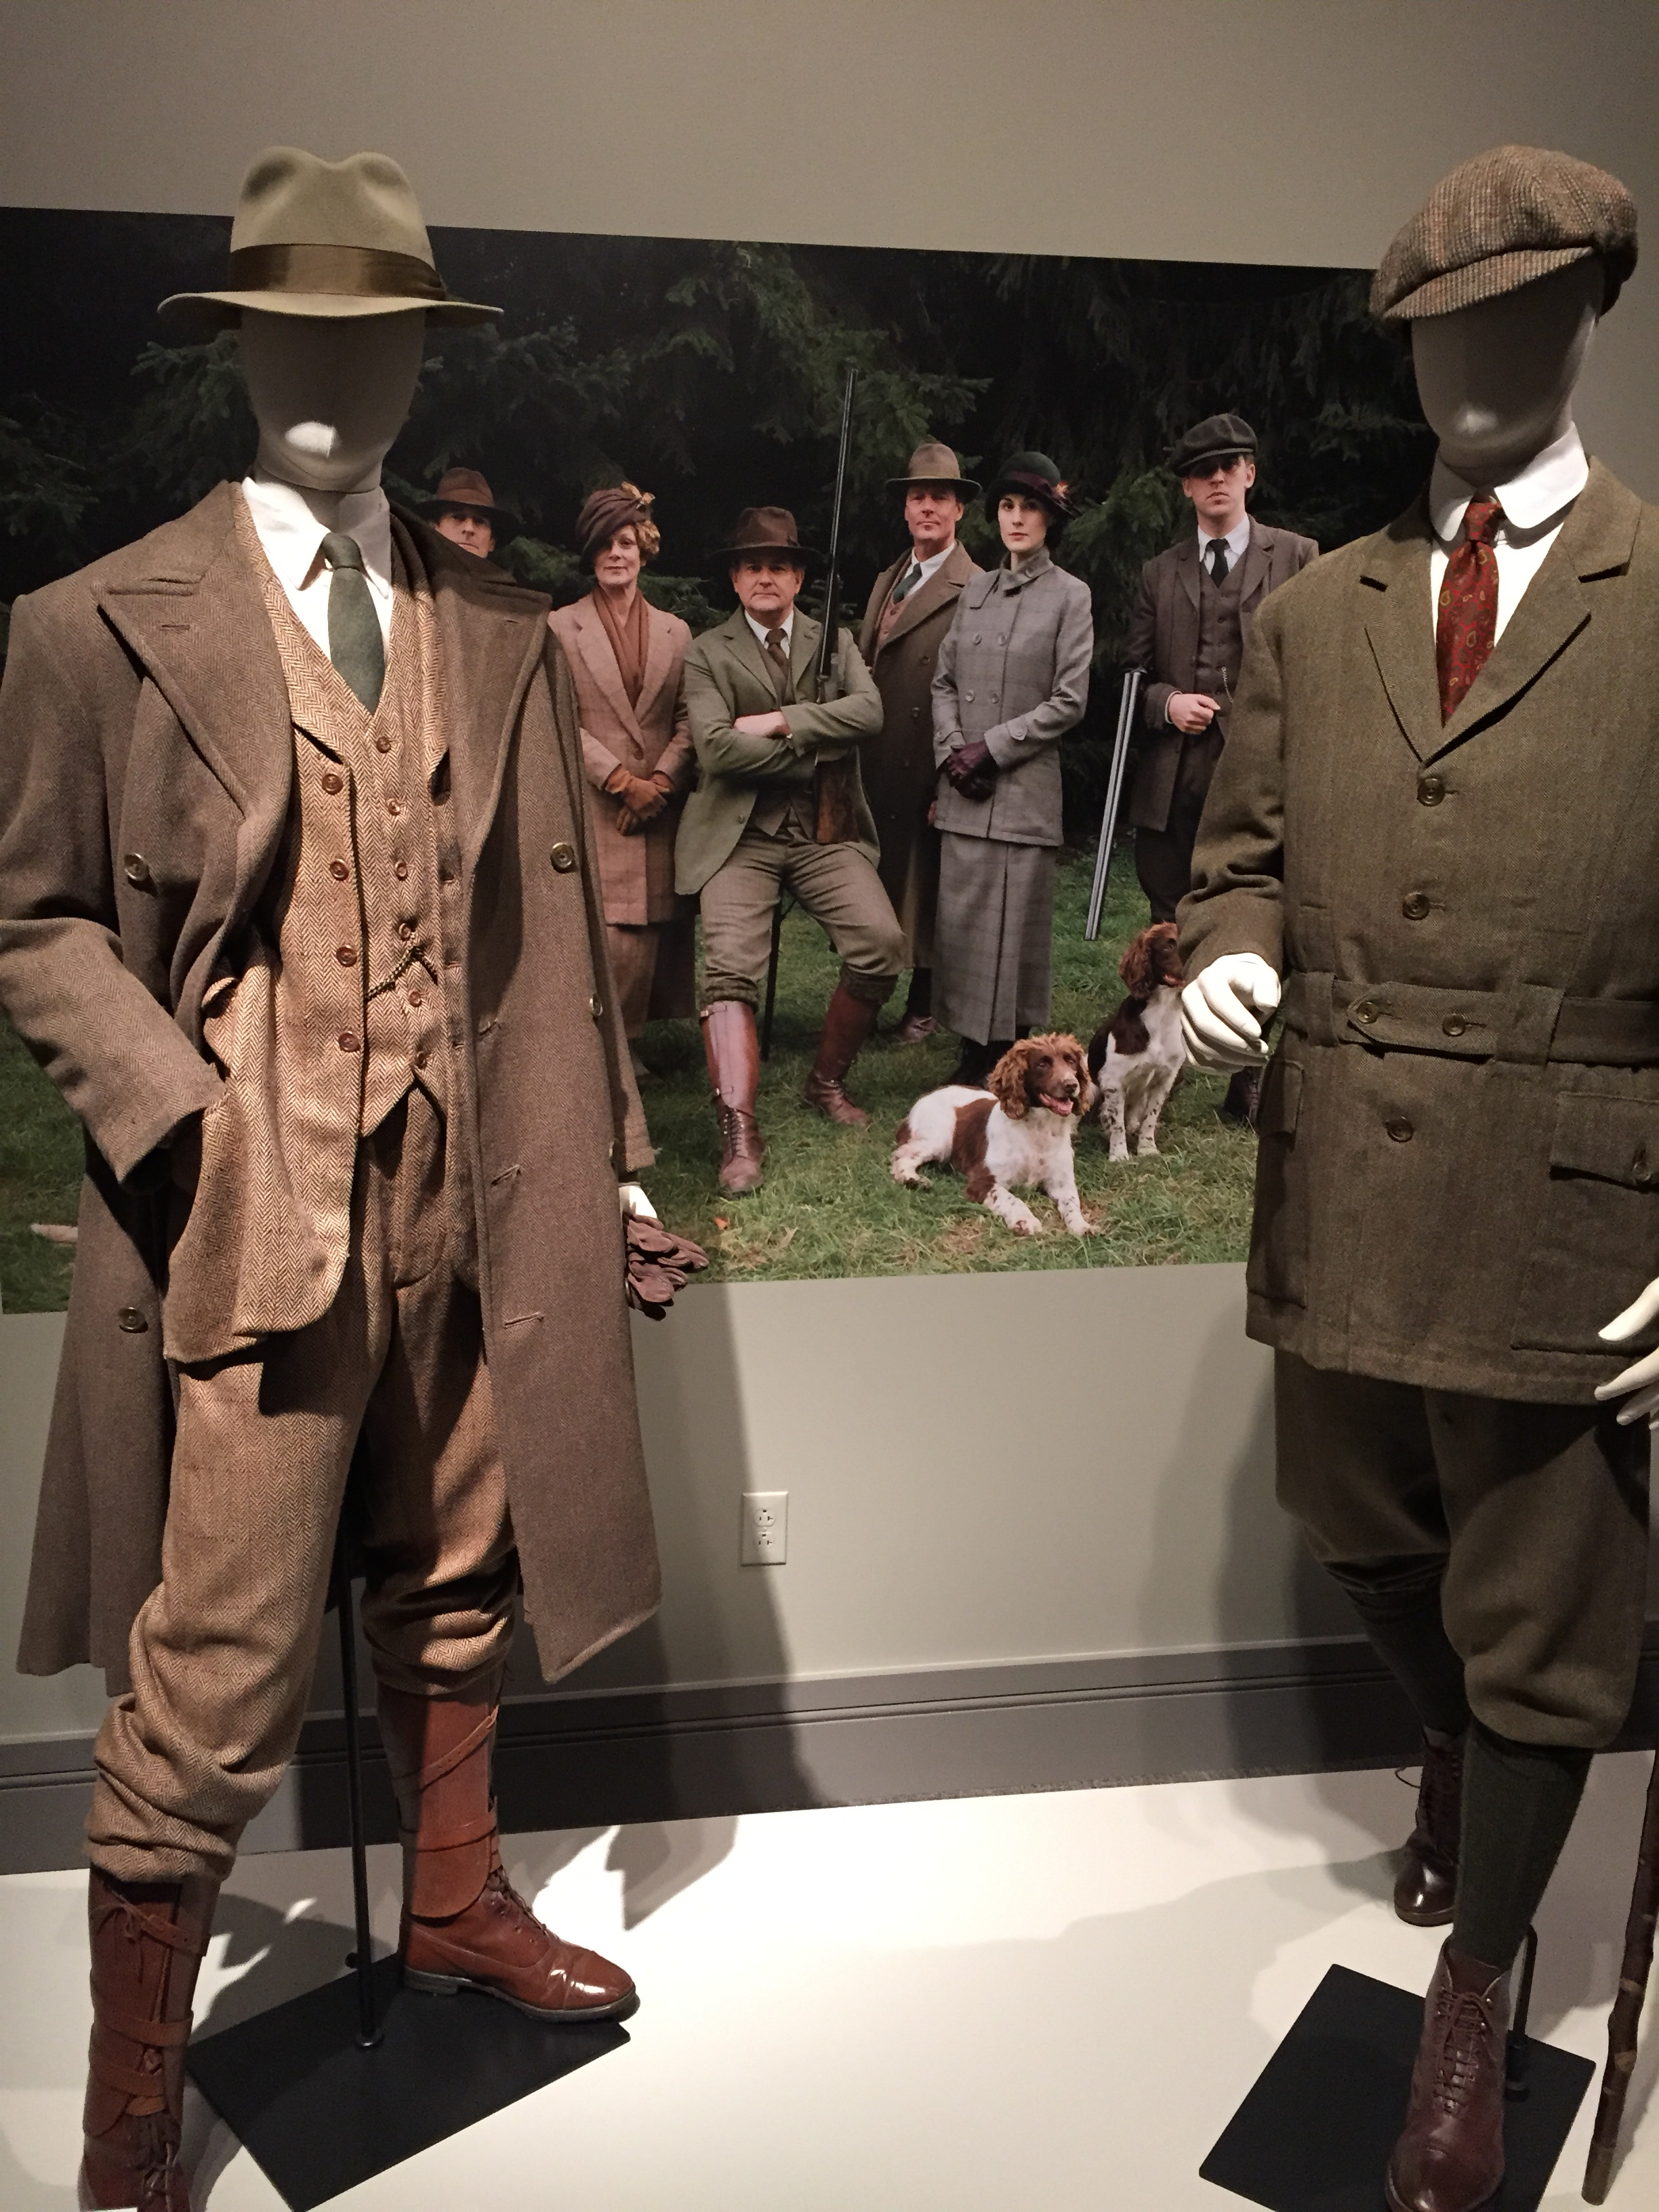 Handsome tweeds worn by the Crawley family.